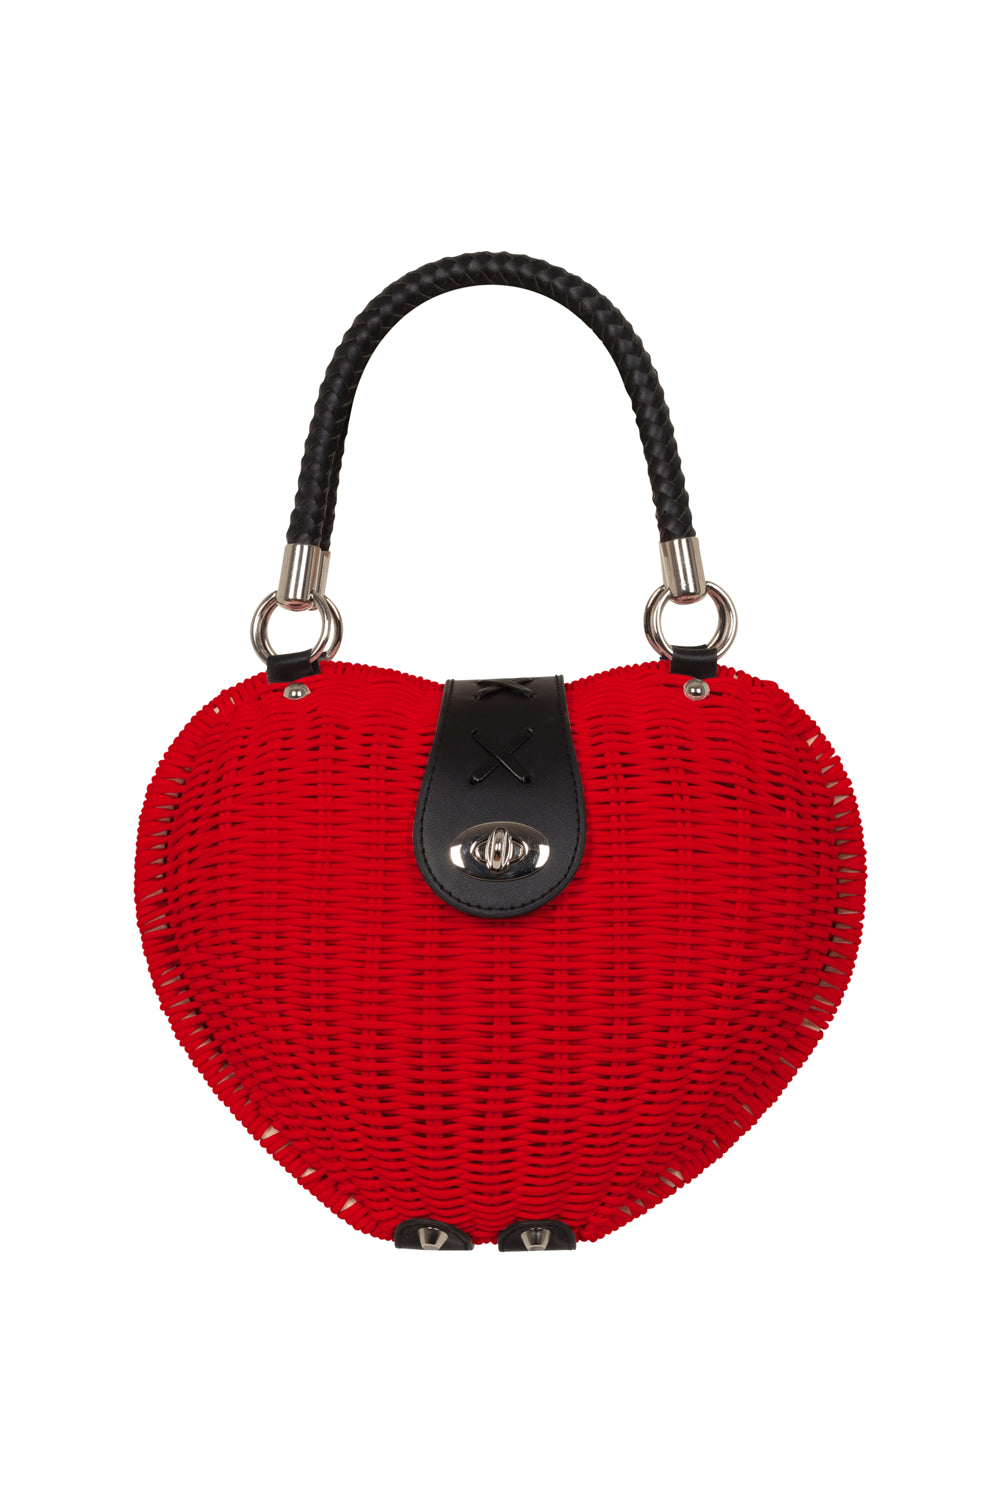 The Monroe Red Bag